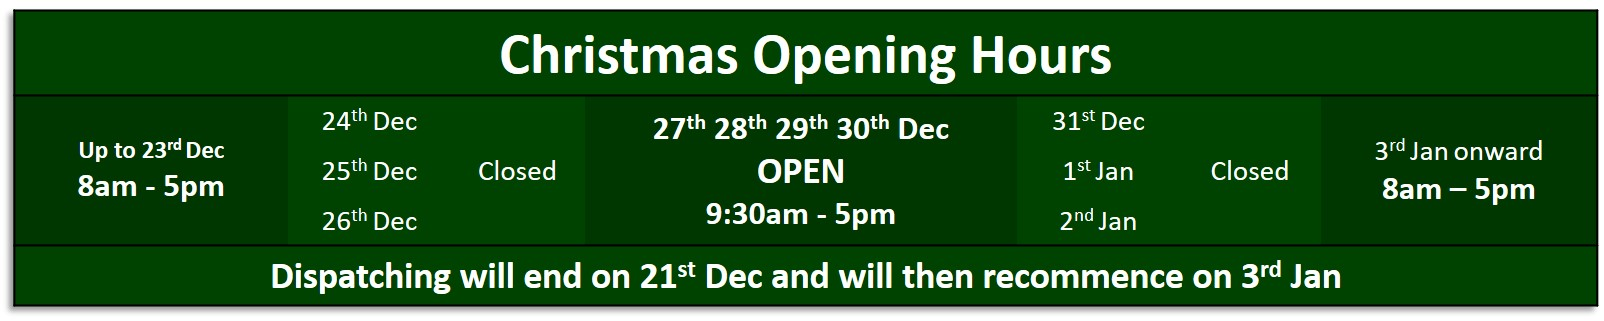 Ron currie and sons christmas opening times